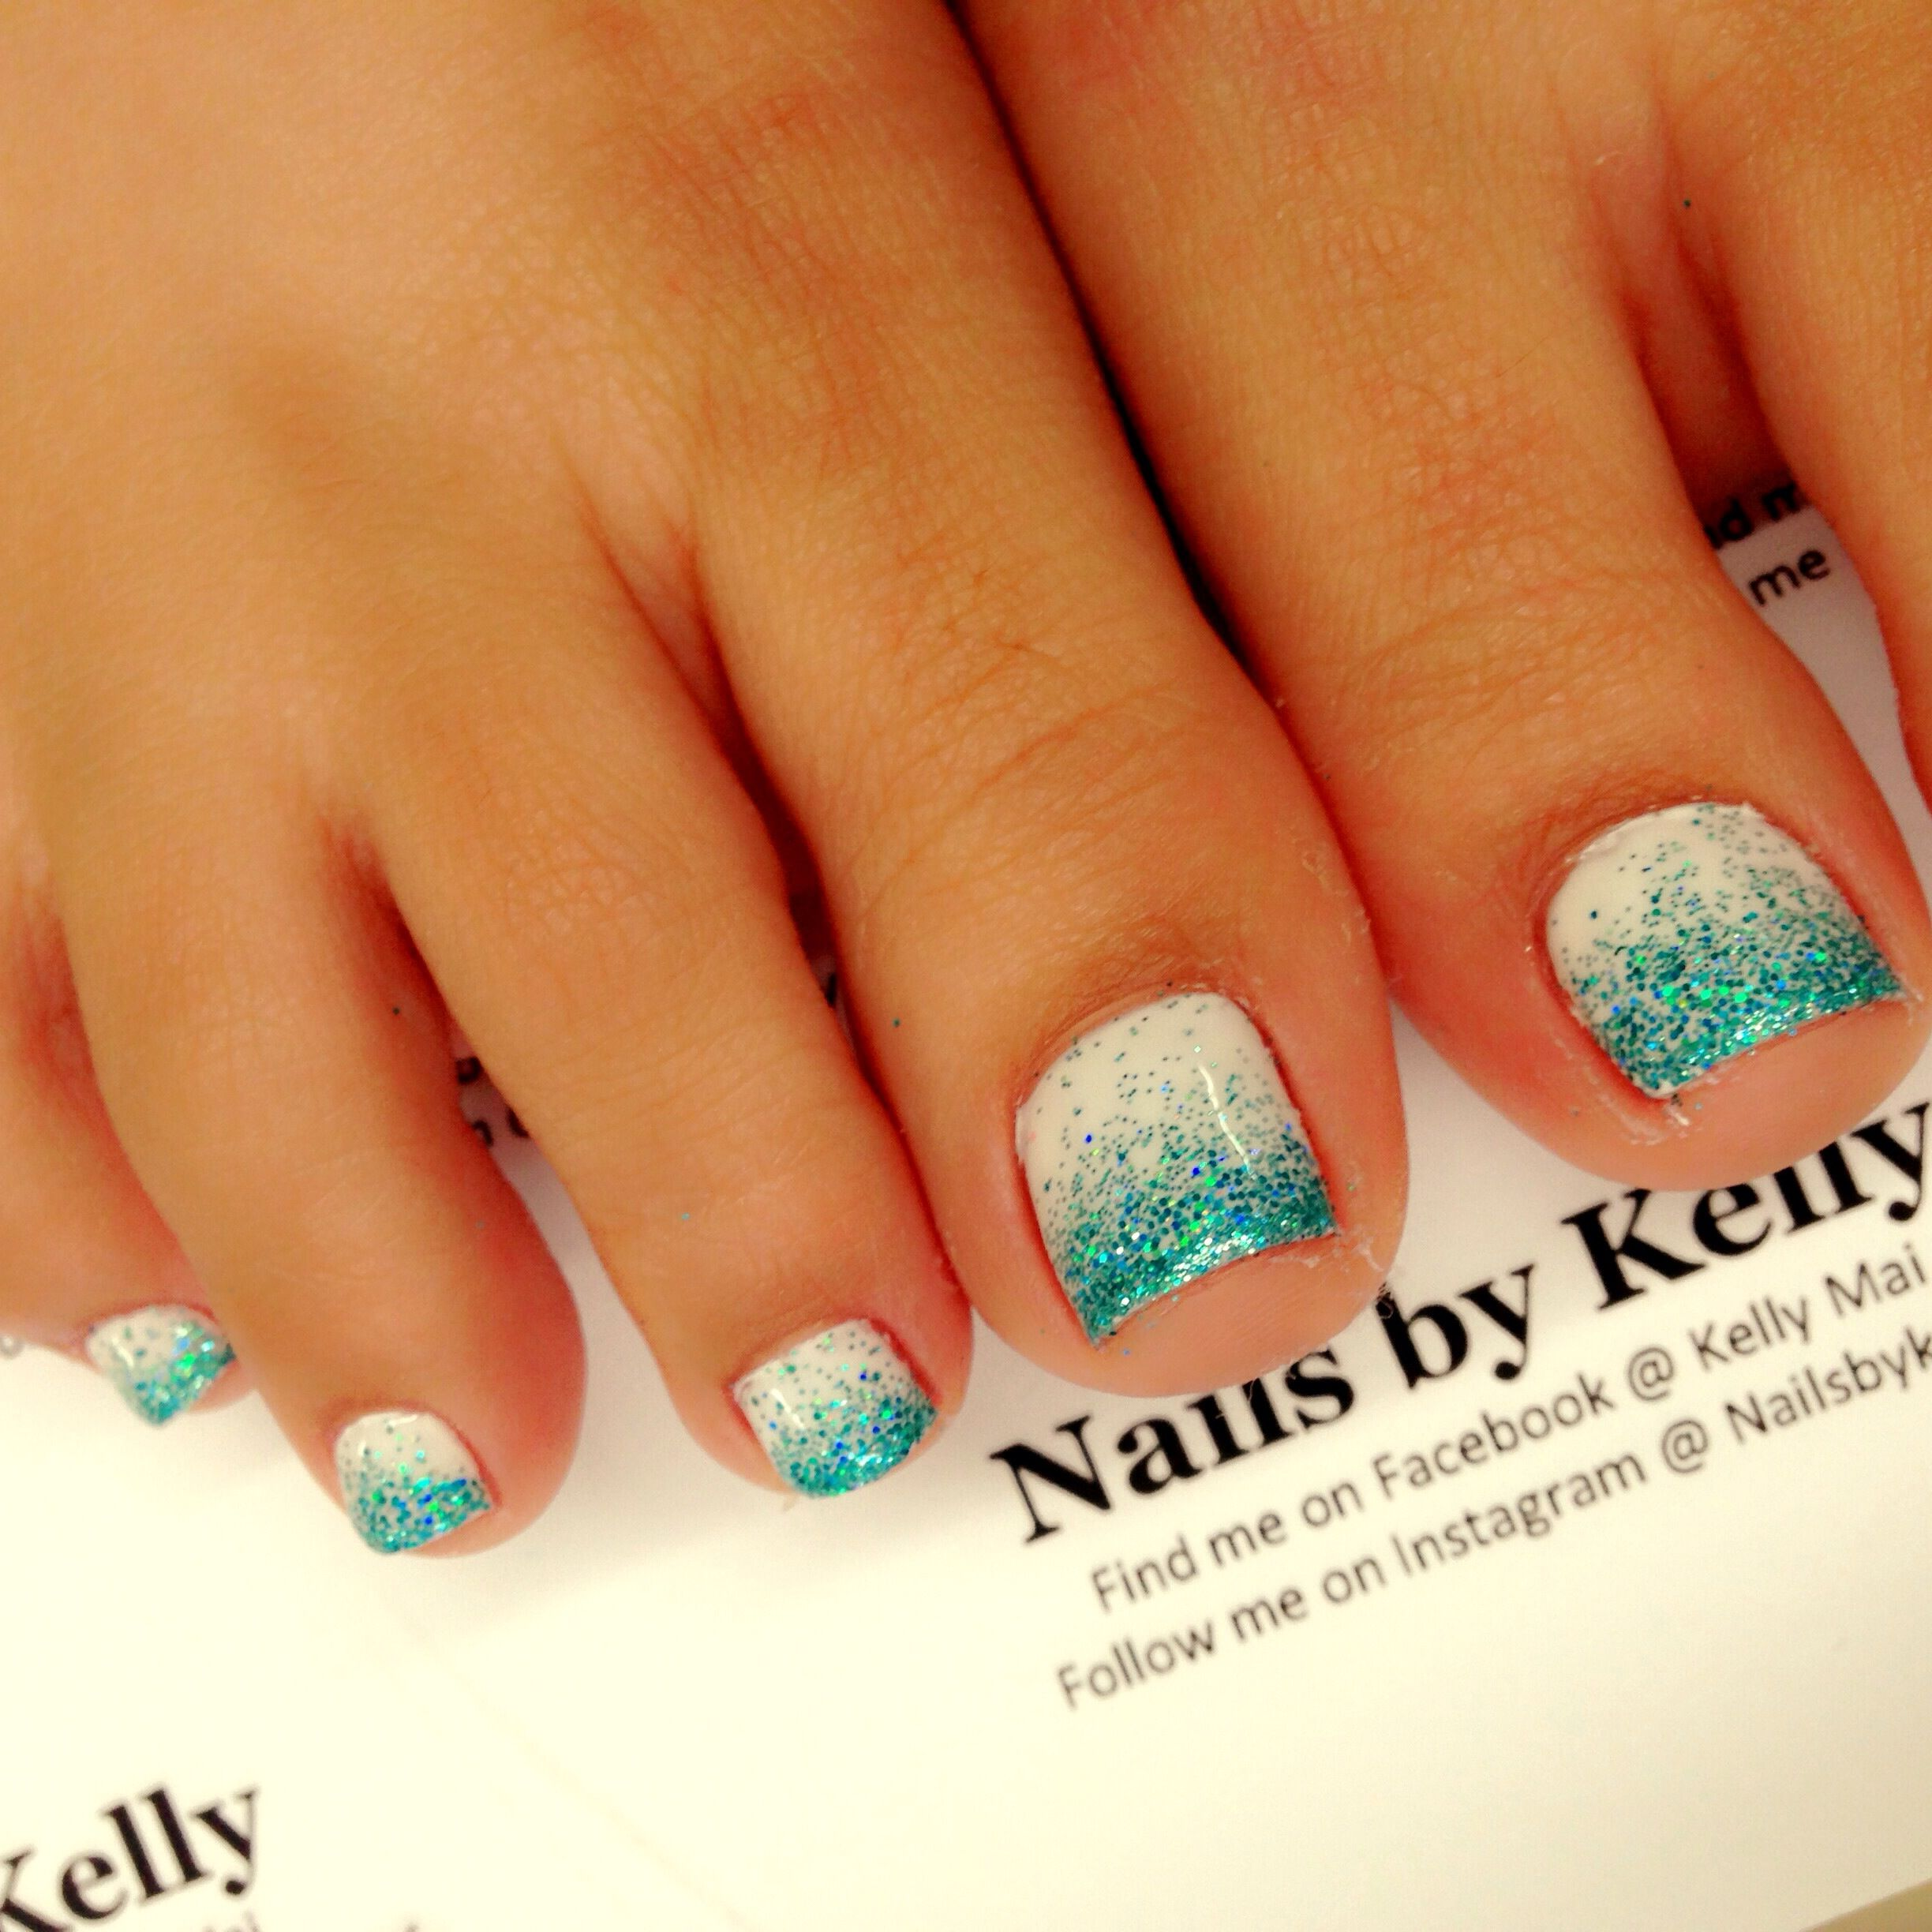 Awesome Pastel Cute Toe Nail Design In Various Color Toe Nail Designs Toenail Art Designs Cute Toe Nails